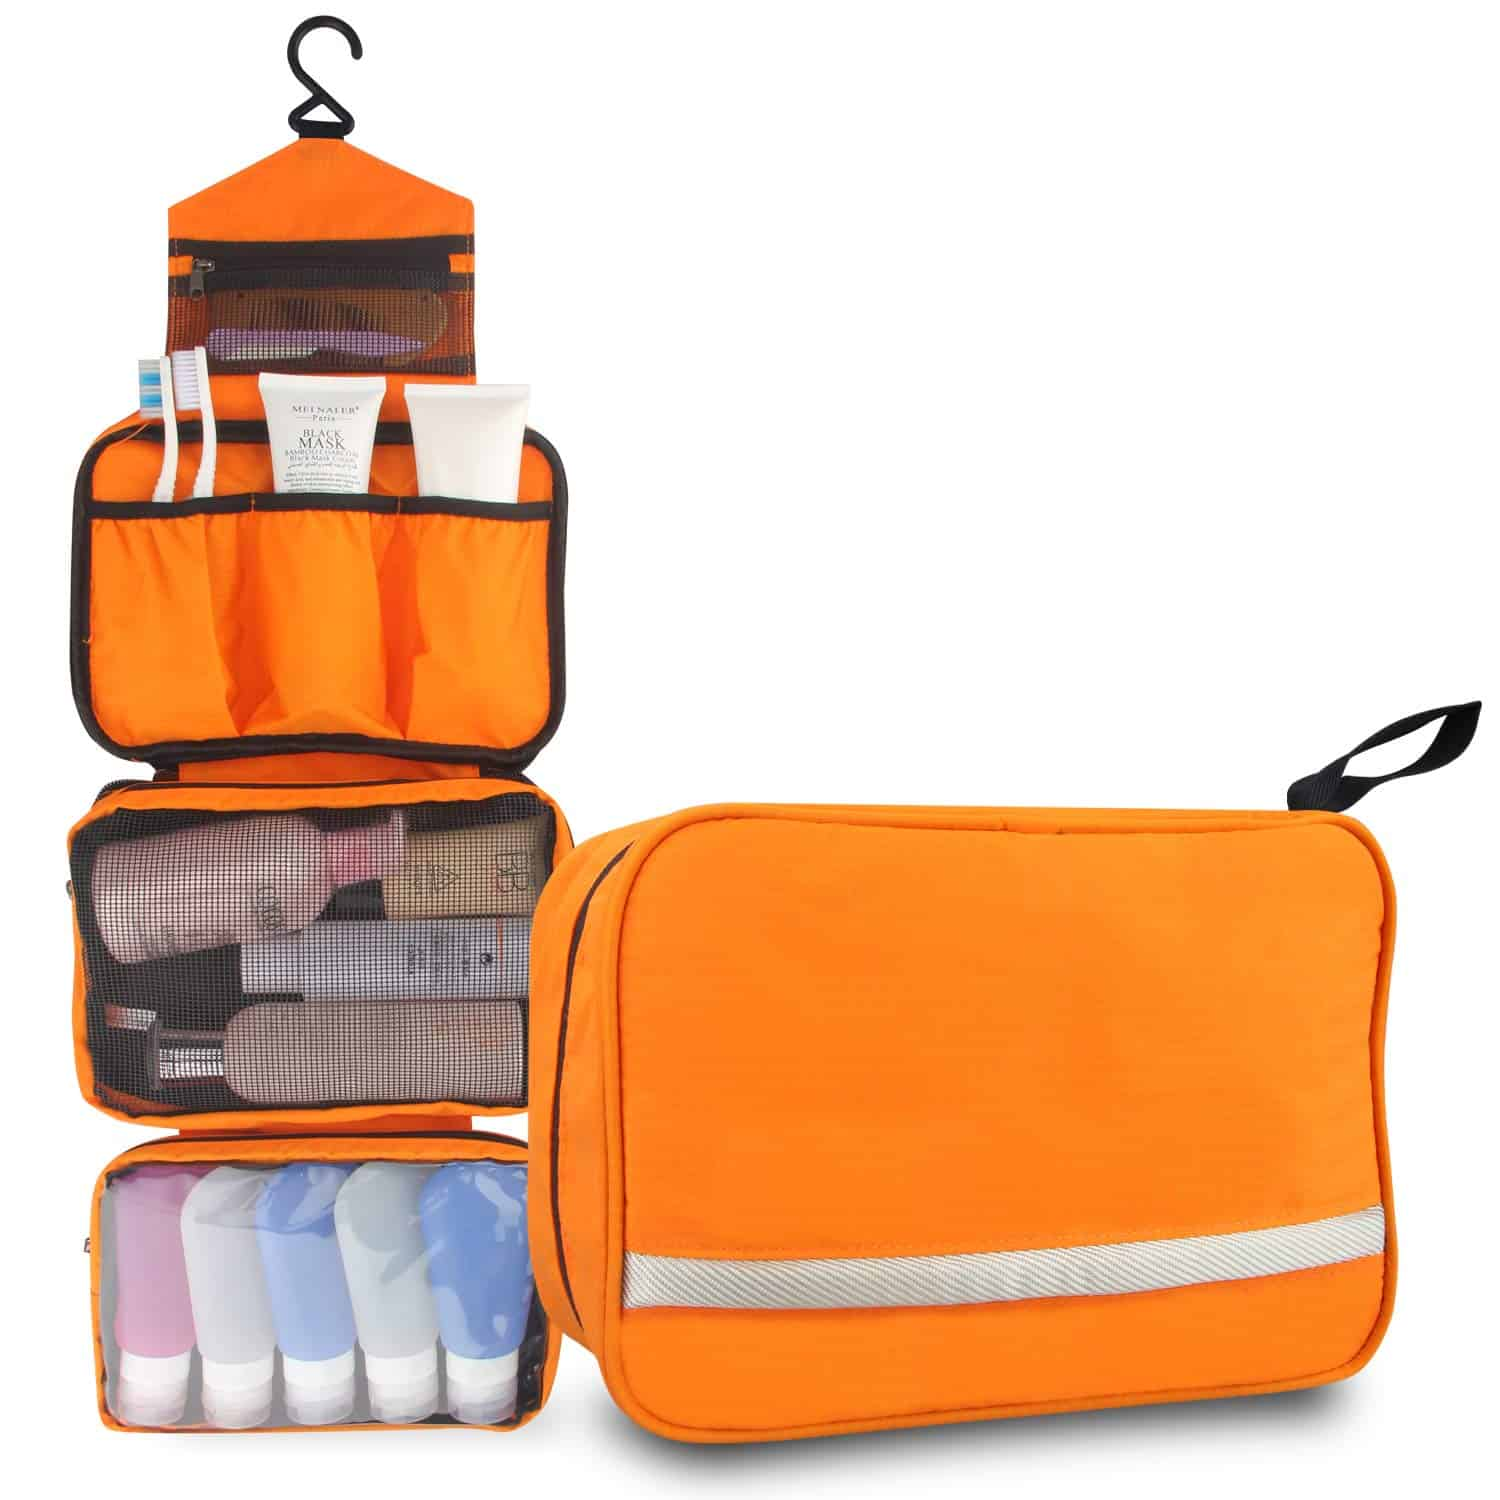 7 Hanging Toiletry Bags Organizers For Travelers 2020